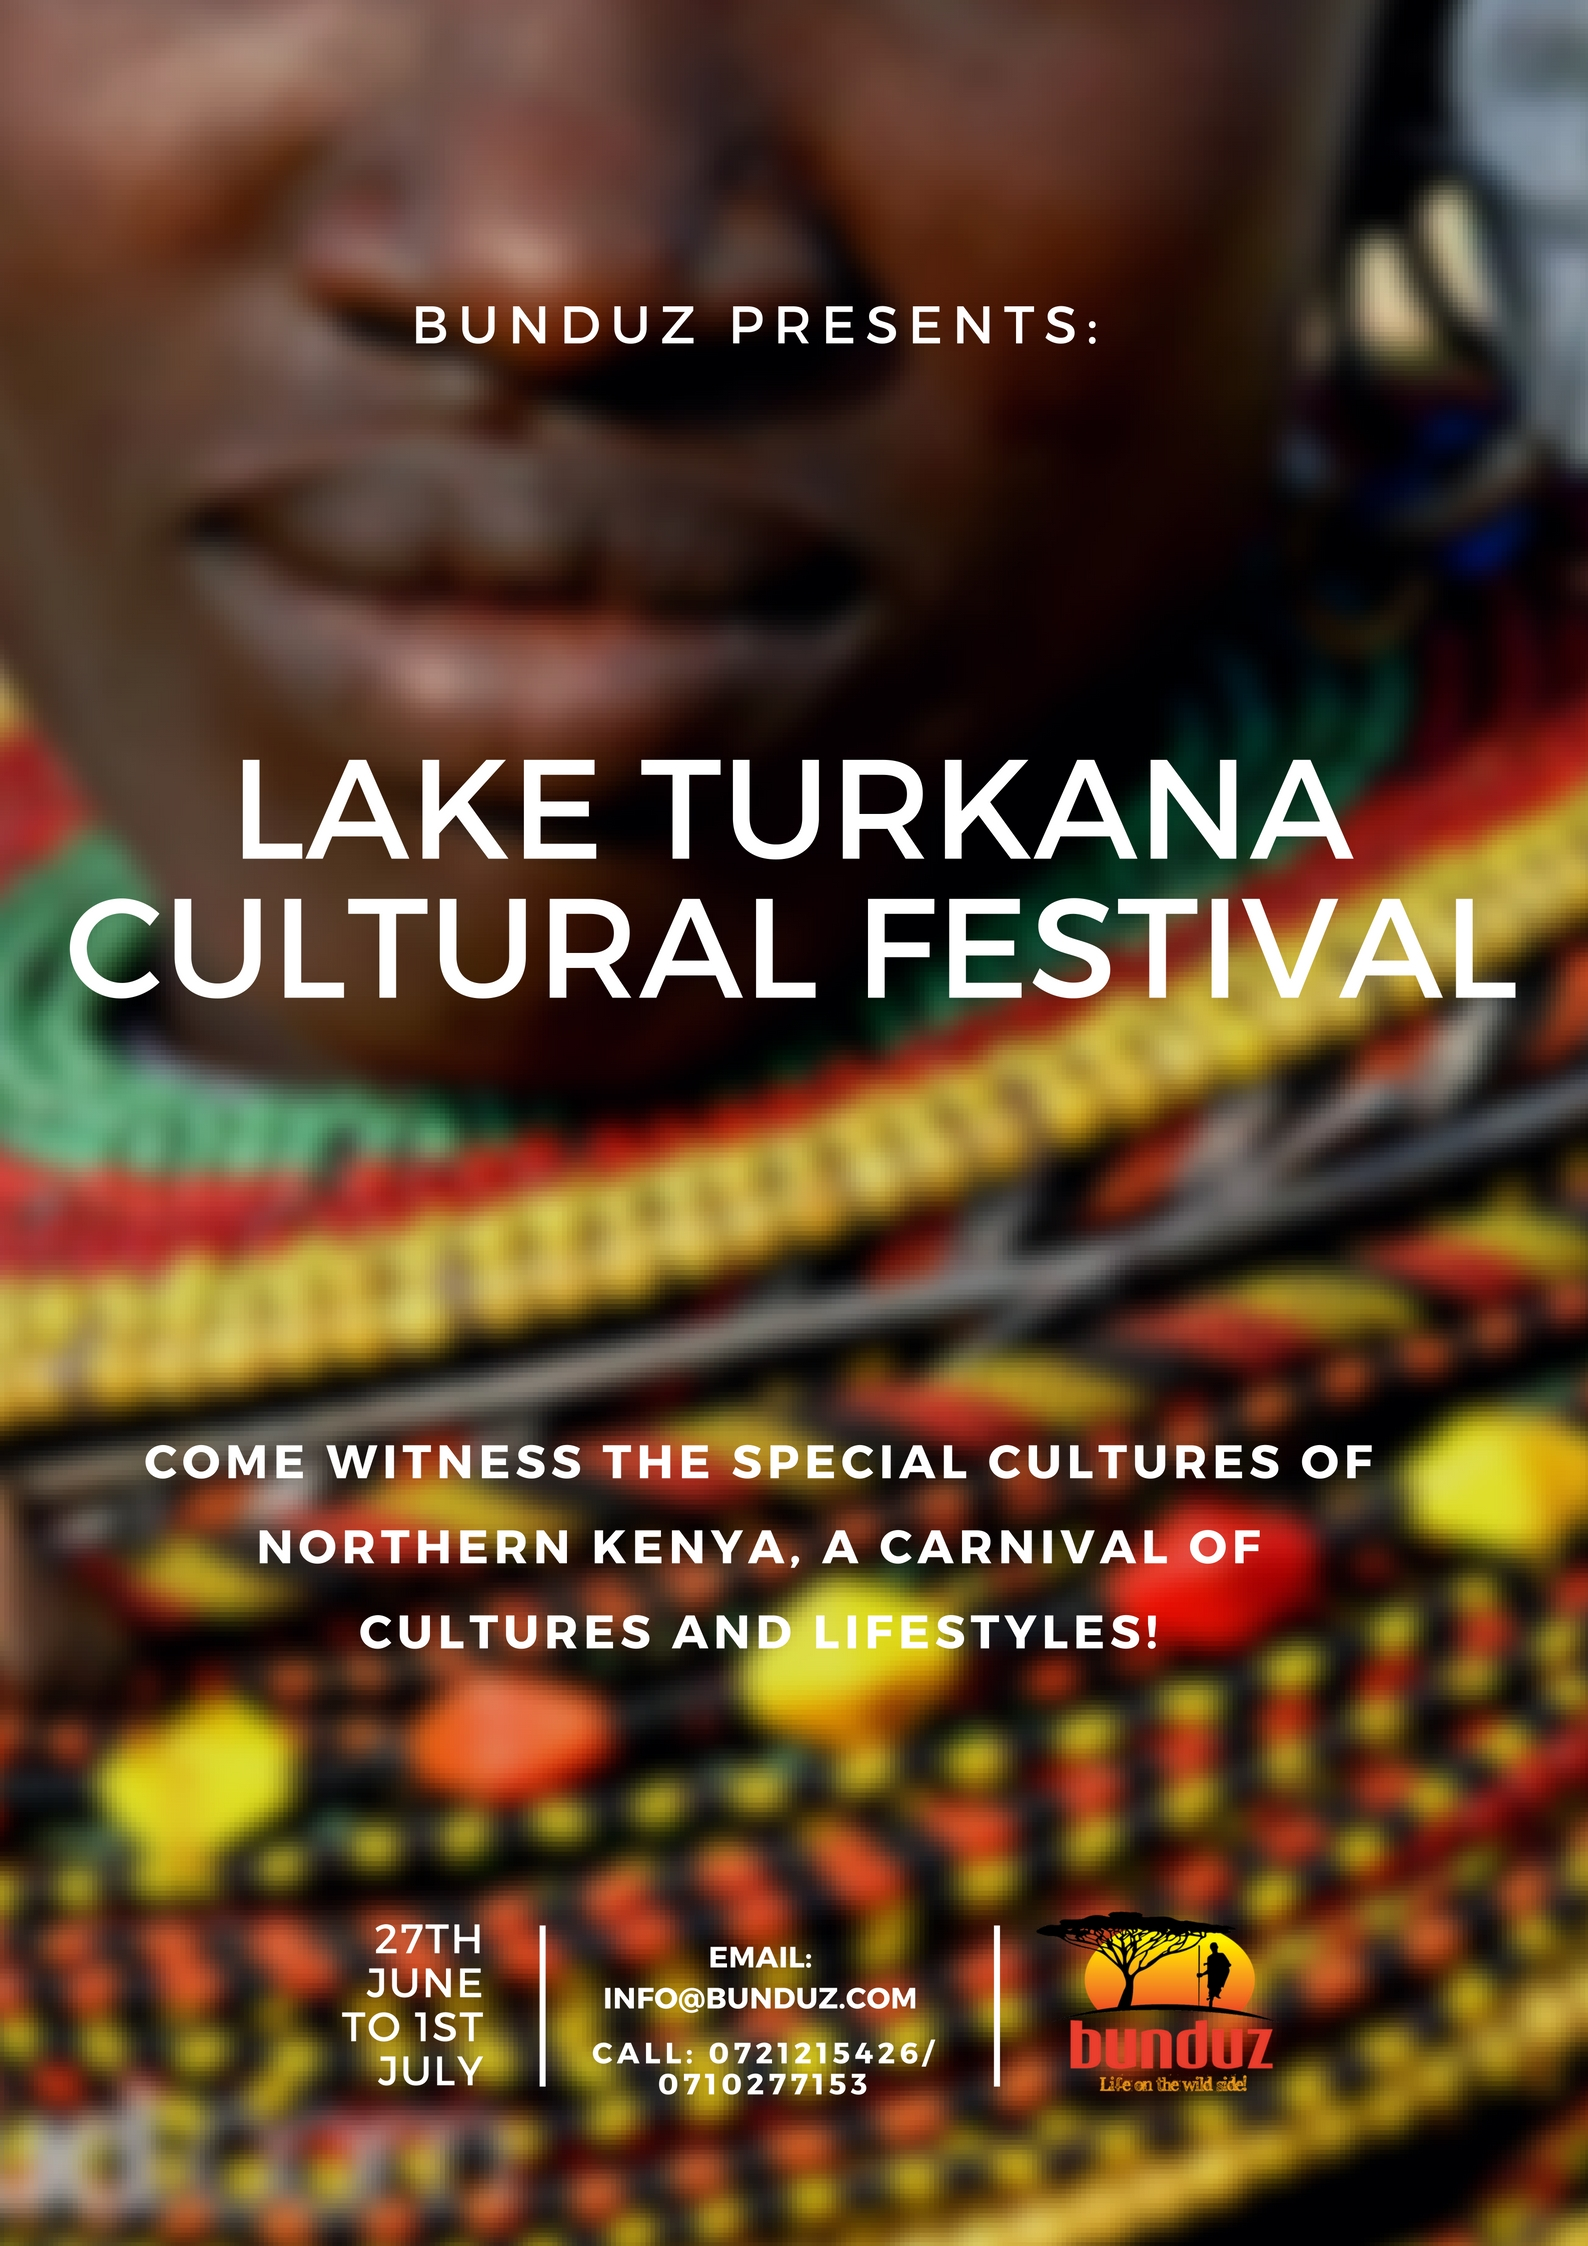 LAKE TURKANA CULTURE FESTIVAL, 27TH JUNE TO 1ST JULY 2018